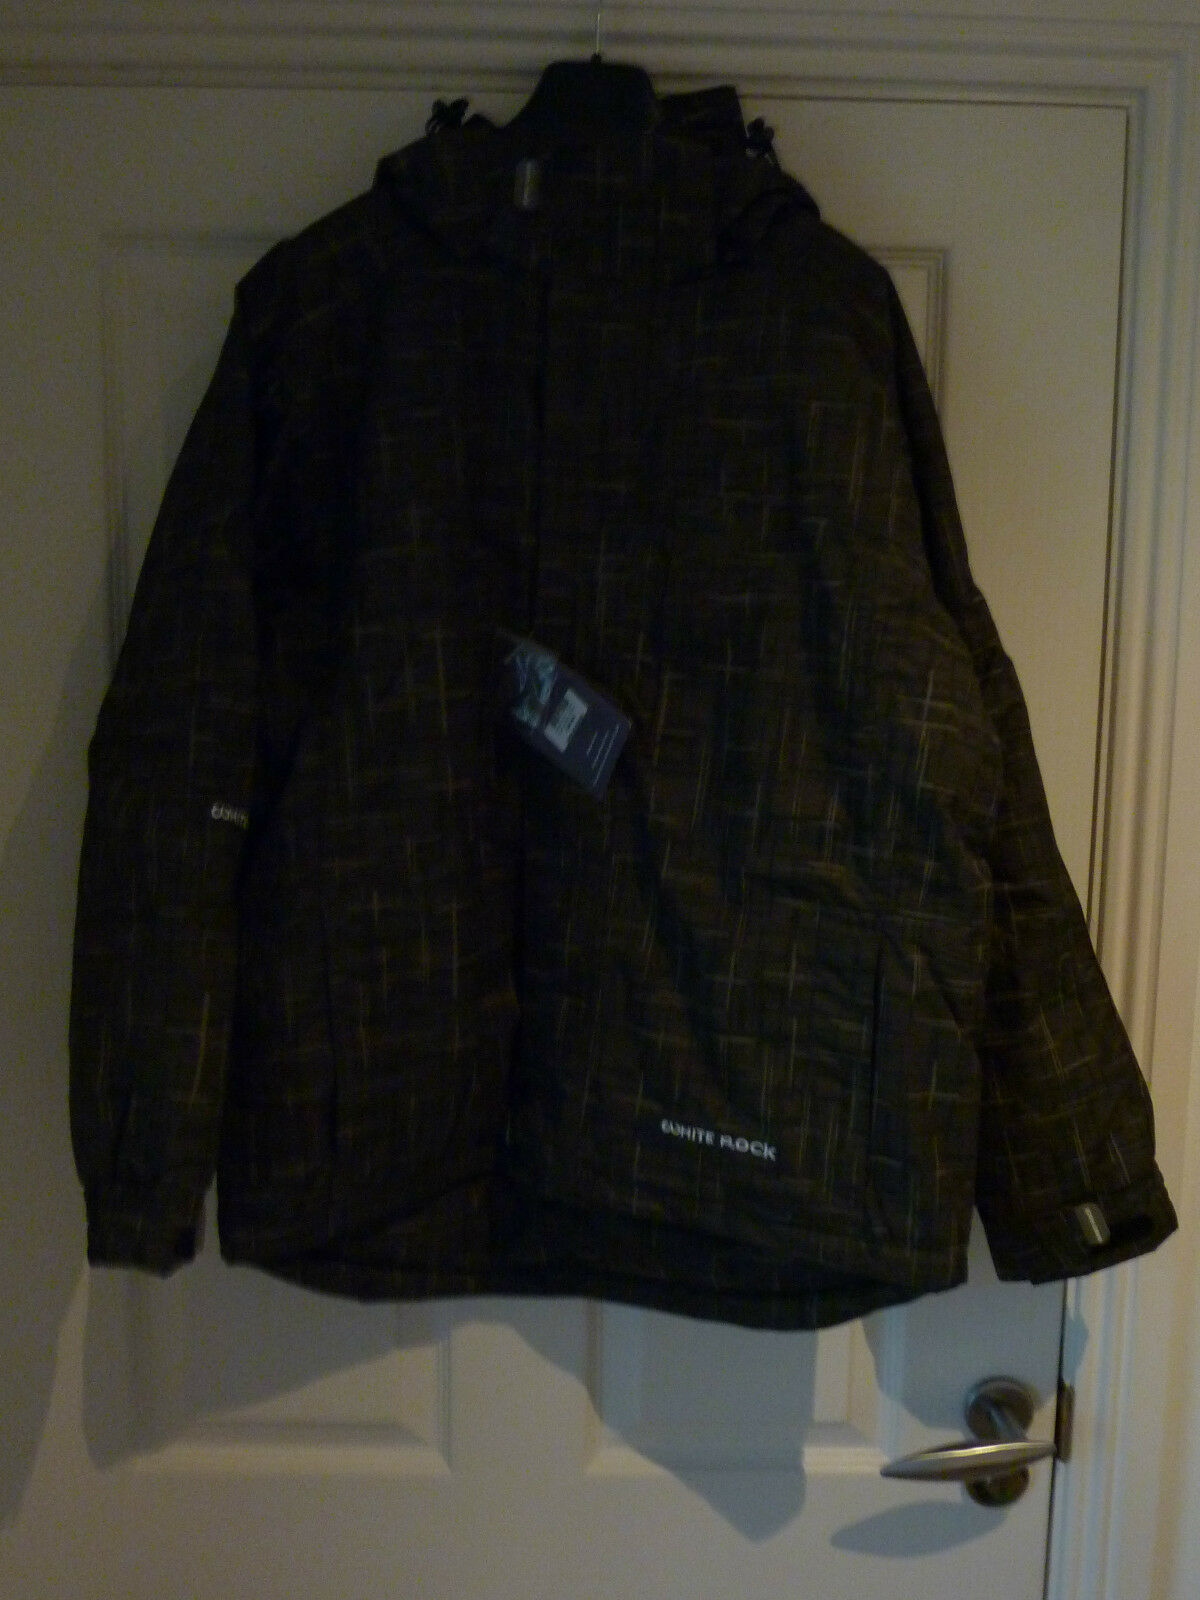 Gorgeous Olive Checked Axe Weiß ROCK Snow Gear Hooded Jacket NWT